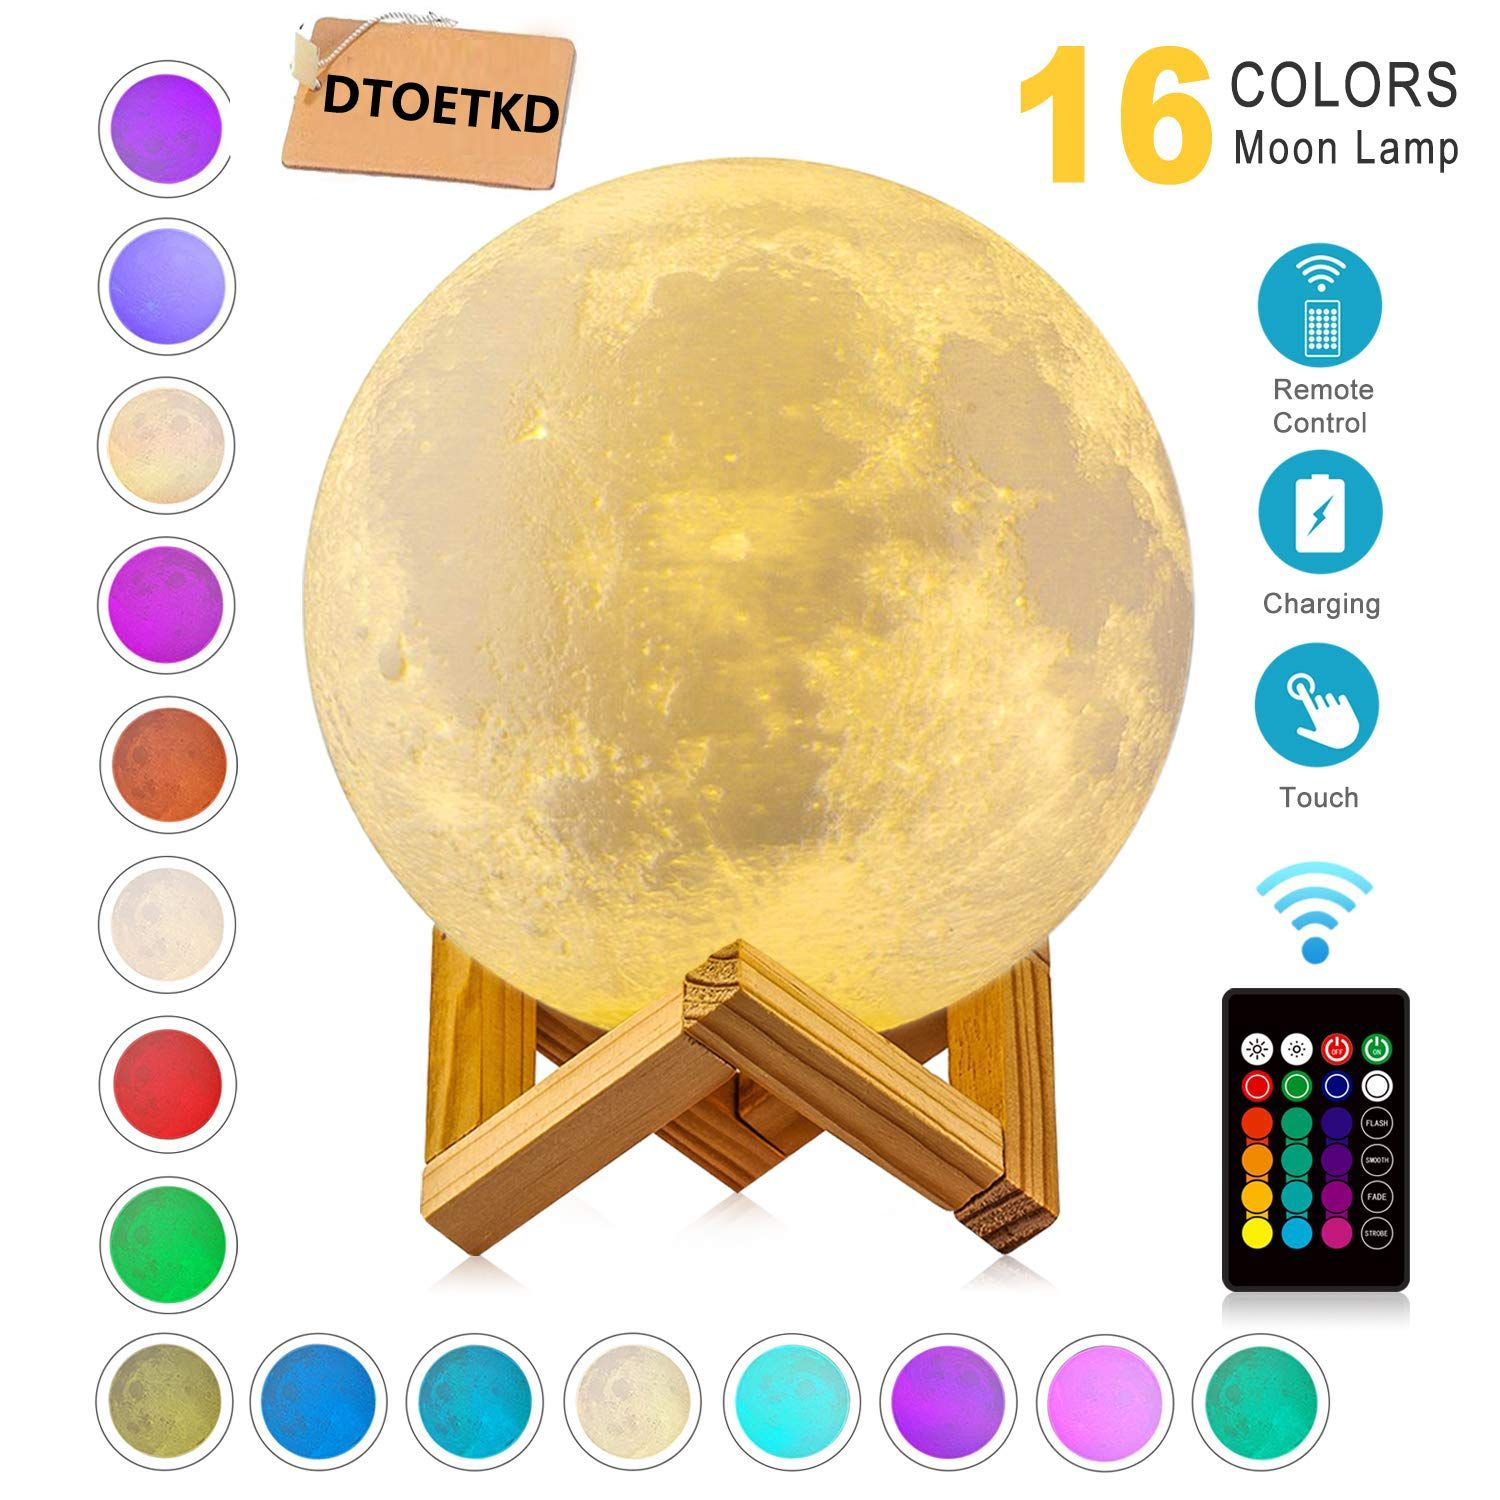 Moon Lamp Night Light 3d Printing 16 Colors Moon Lights With Stand And Remote And Touch Control And Usb Rechargeable Diam In 2020 Led Night Light Night Light 3d Light